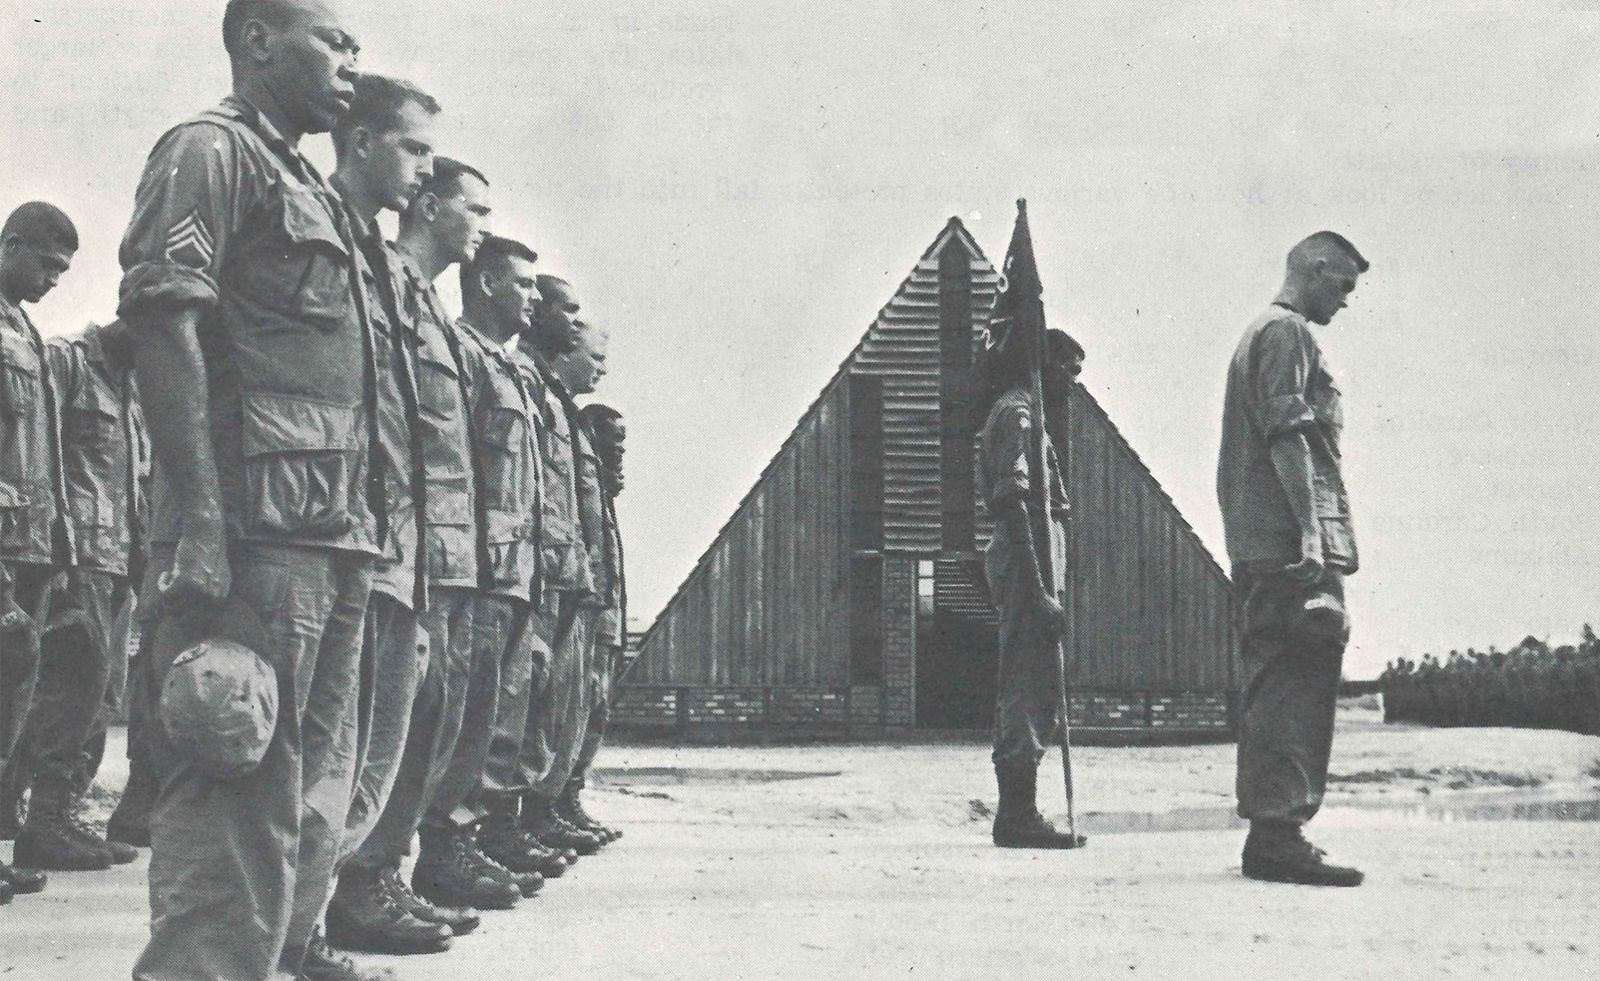 Solemn moments. The Second Battalion pauses in honor of fallen comrades after Bien Hoa. Chaplain (Capt.) Robert Crick is the chaplain to this airborne brigade.